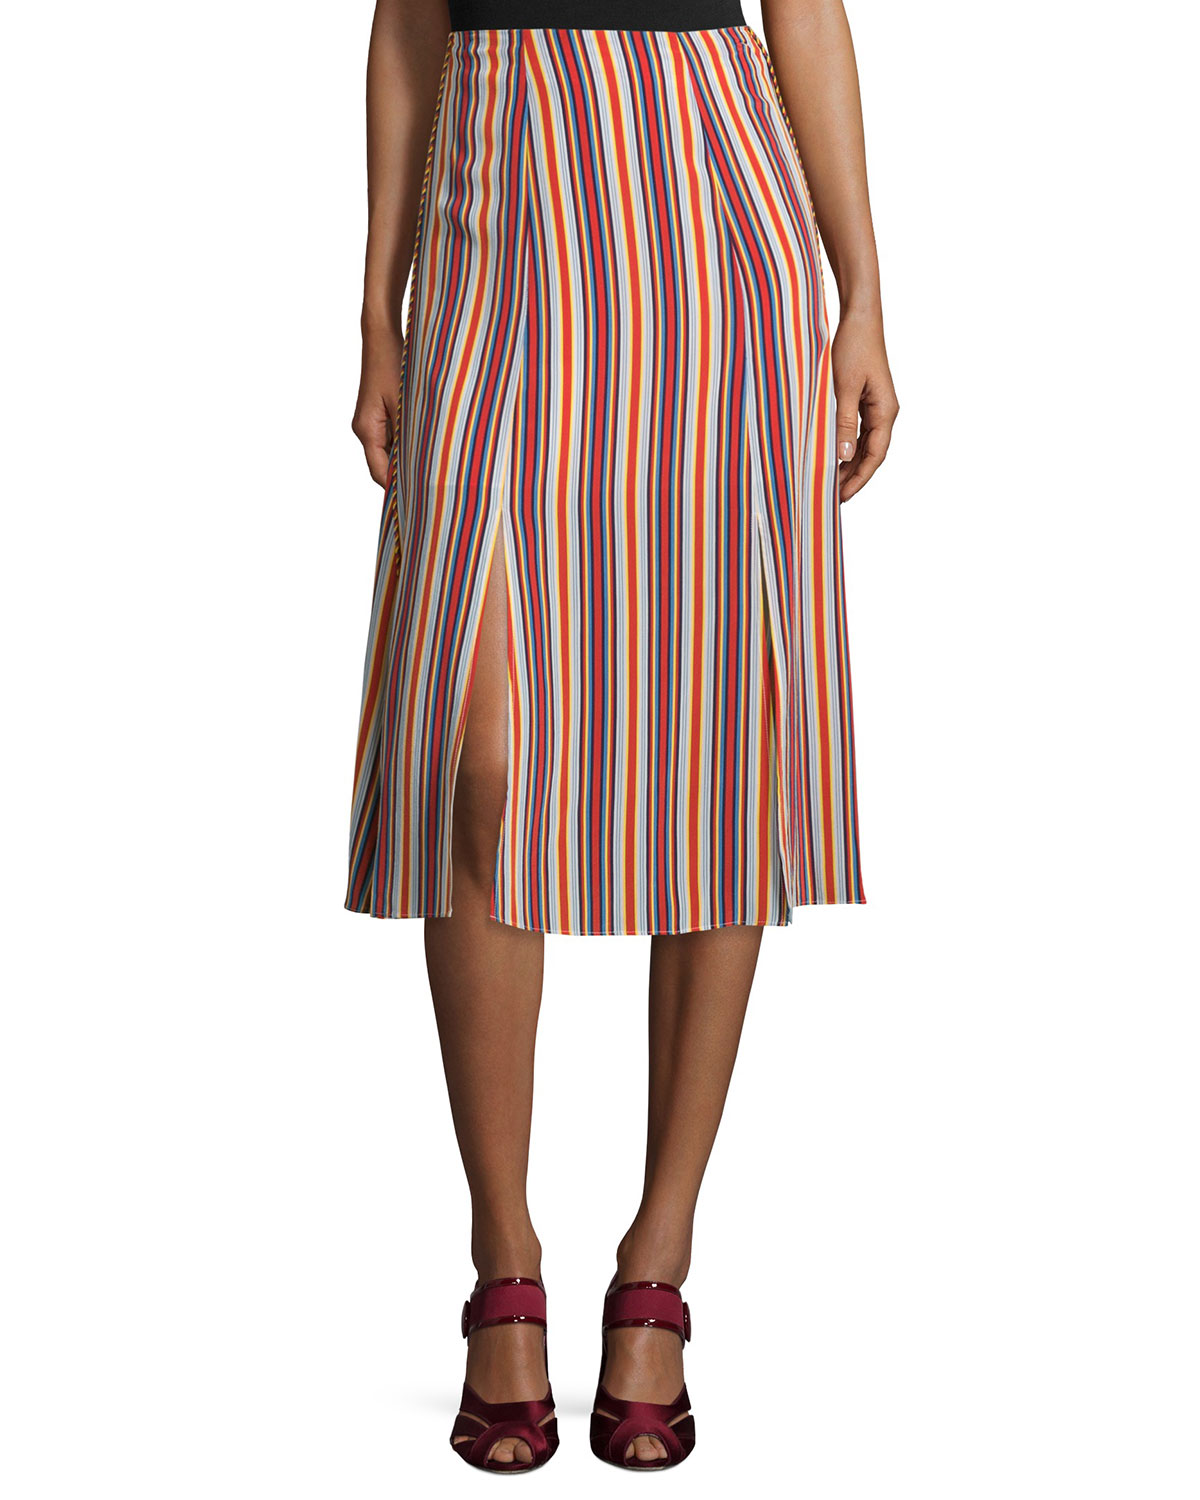 Leoni Silk Striped Midi Skirt, Multicolor